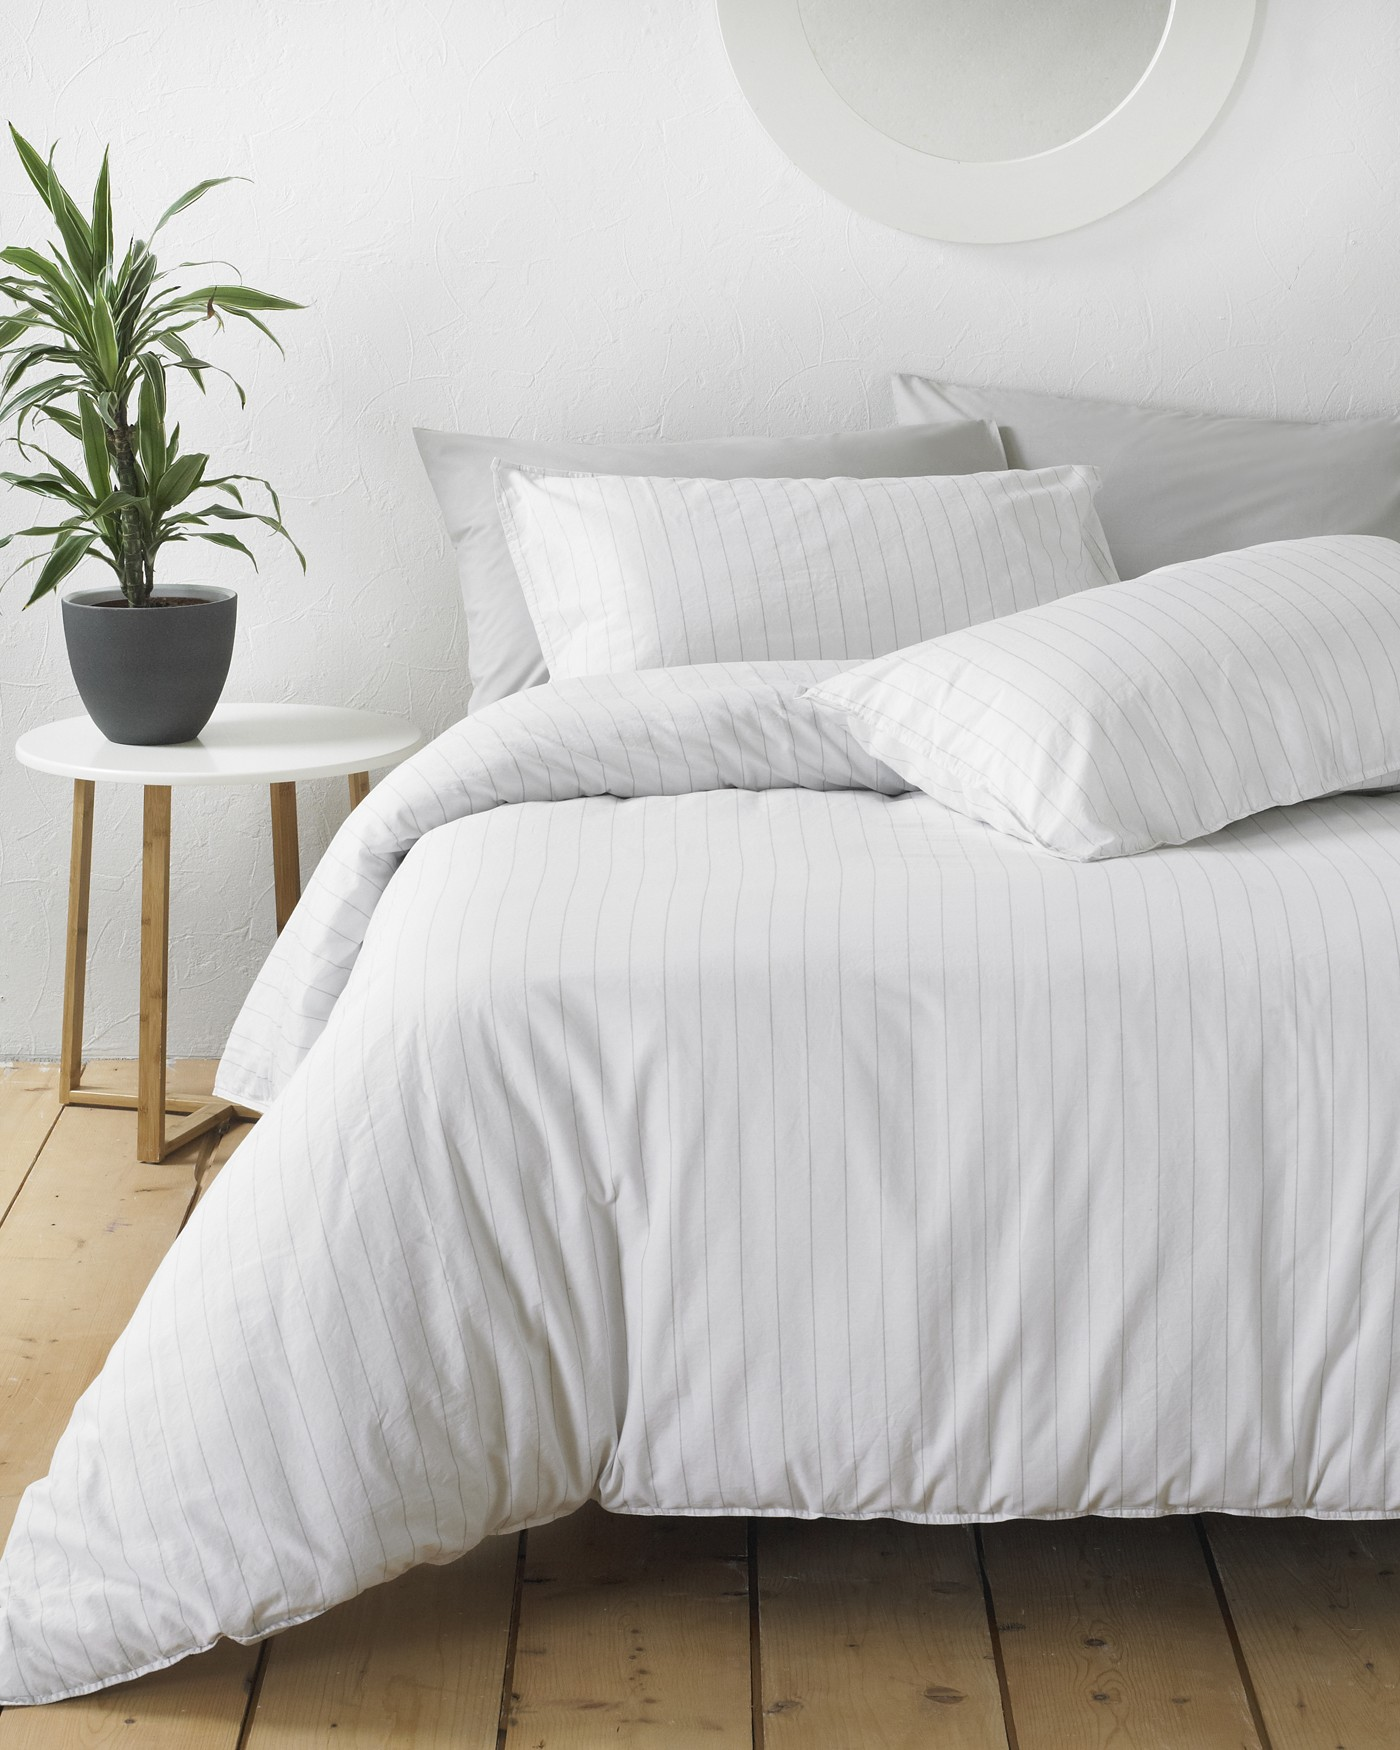 The Home Furnishings Company 100% Cotton Linear Grey Duvet Set